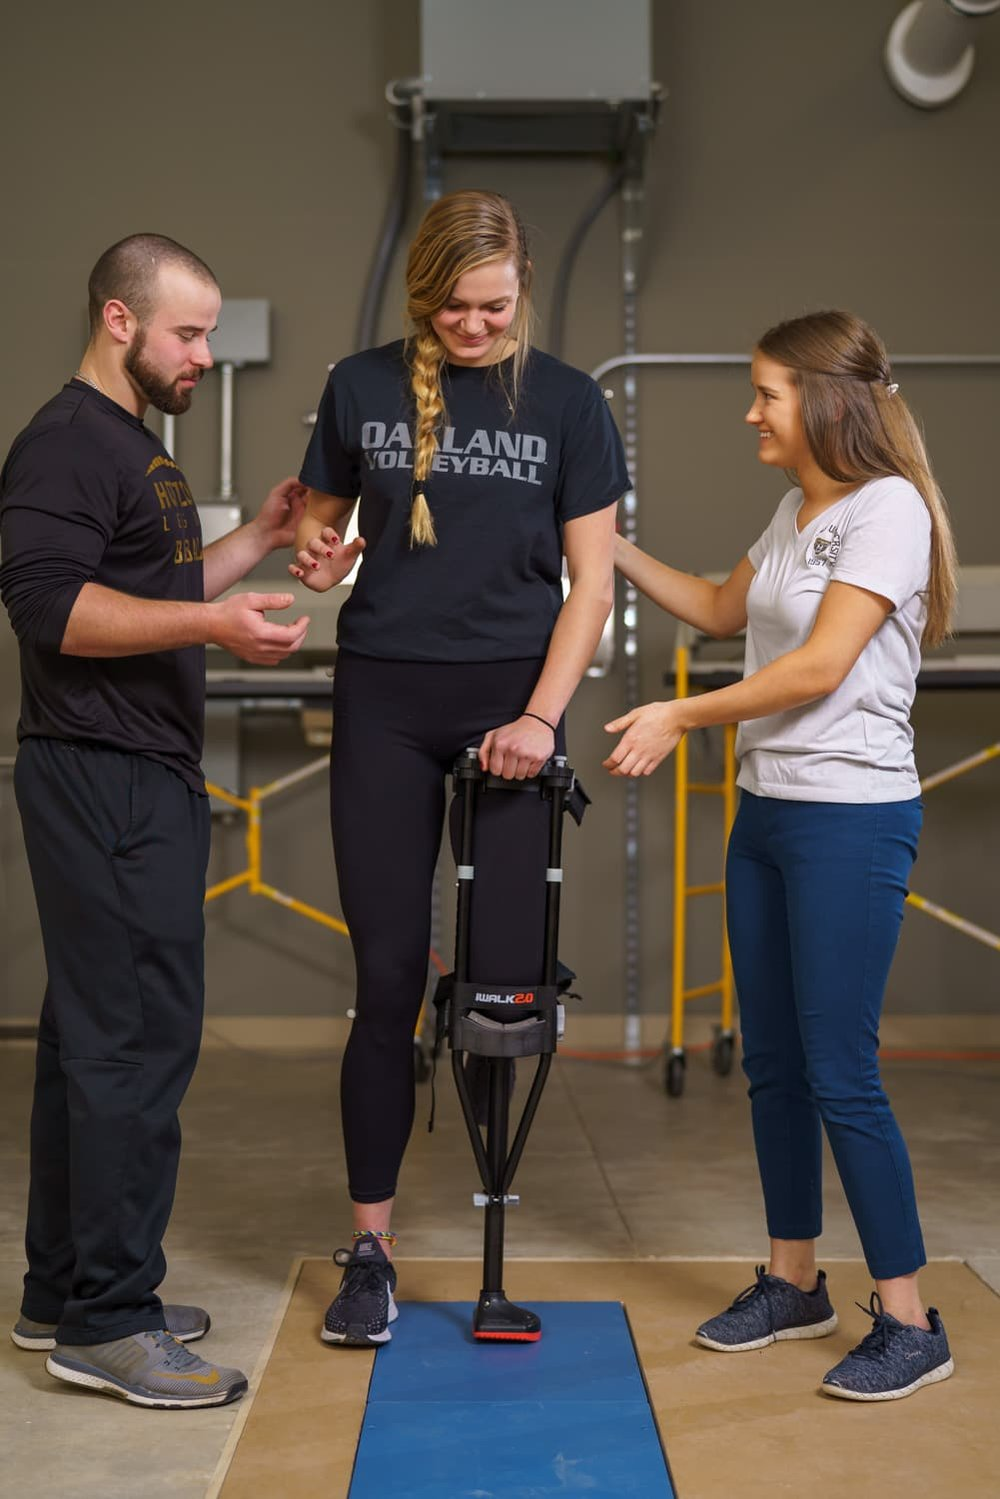 students assisting athlete while monitoring balance